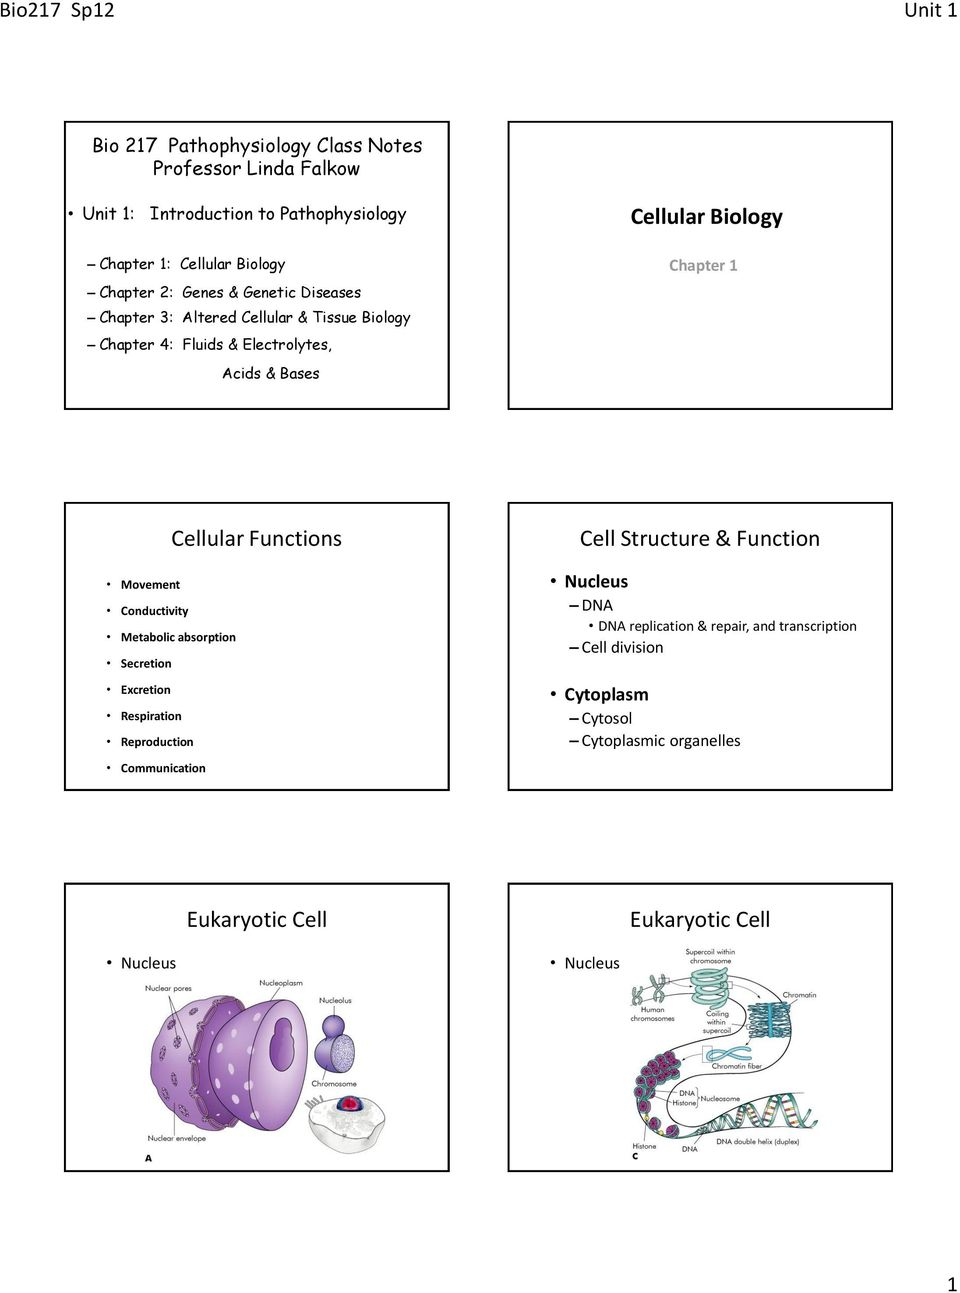 Cellular Biology Functions Cell Structure Function Of Eukaryotic Movement Conductivity Metabolic Absorption Secretion Excretion Respiration Reproduction Communication Nucleus